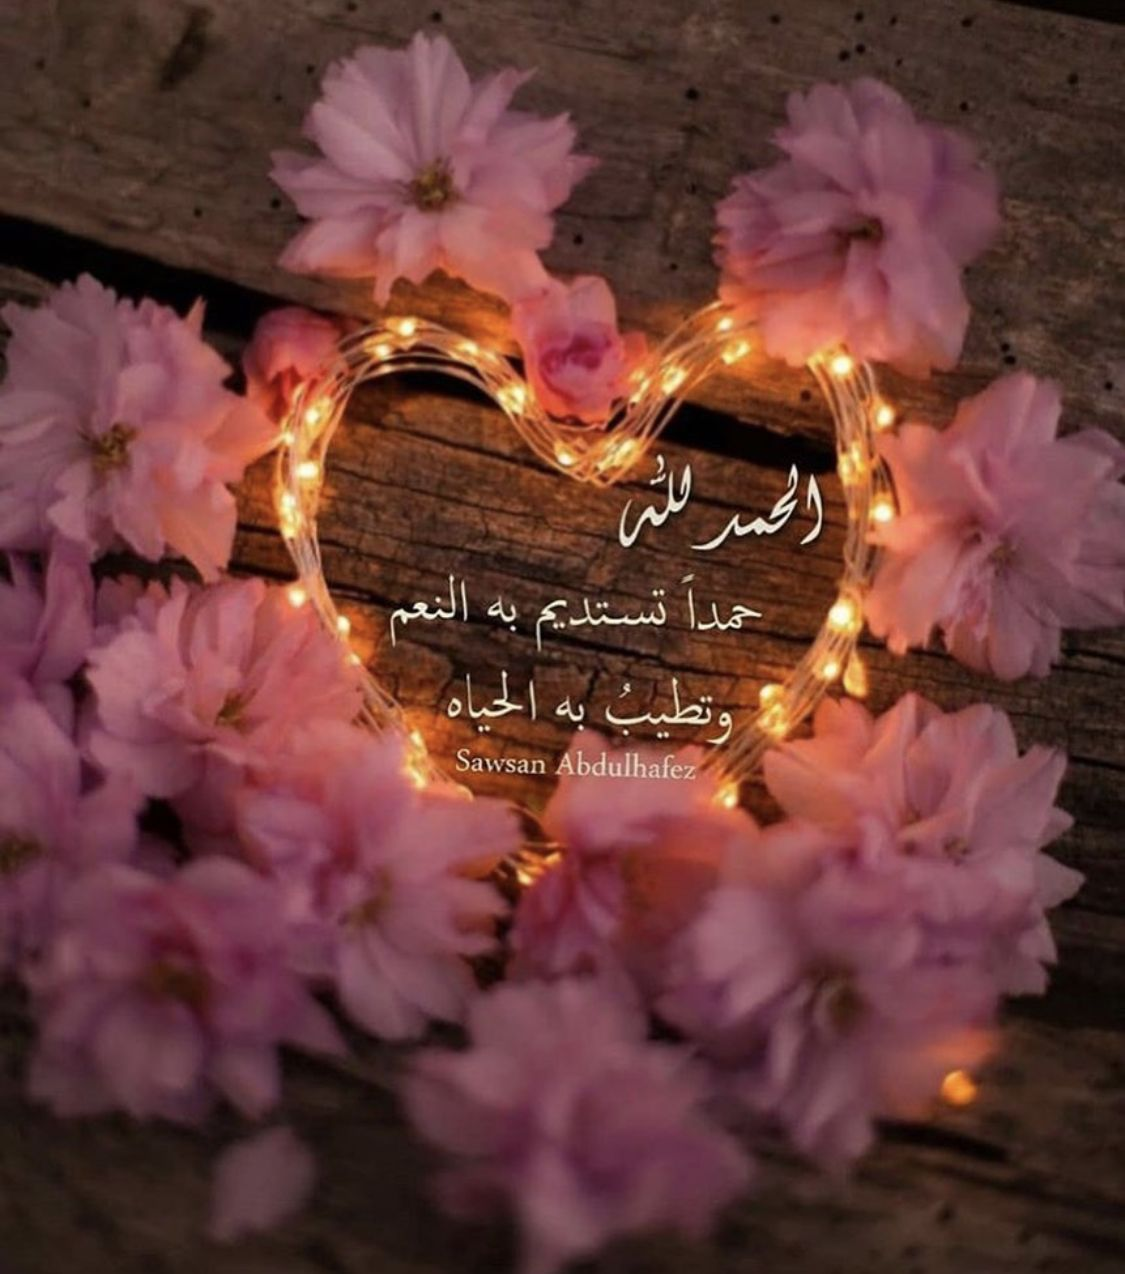 Pin By Afnan Enterprises On Ayaz In 2021 Islamic Quotes Wallpaper Arabic Quotes Islamic Pictures